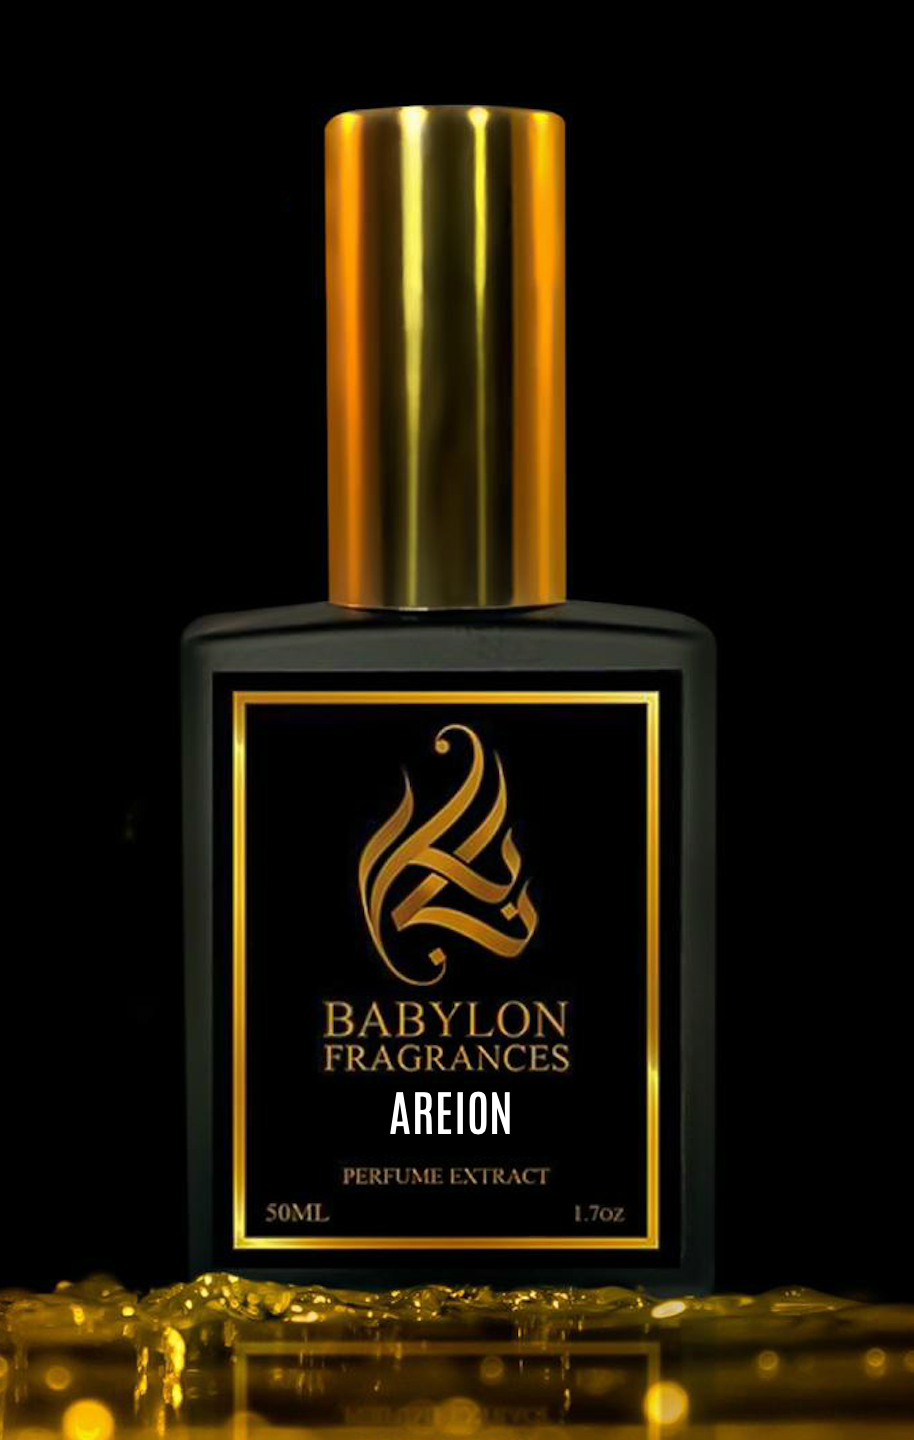 Areion - inspired by Parfums de Marl's Pegasus